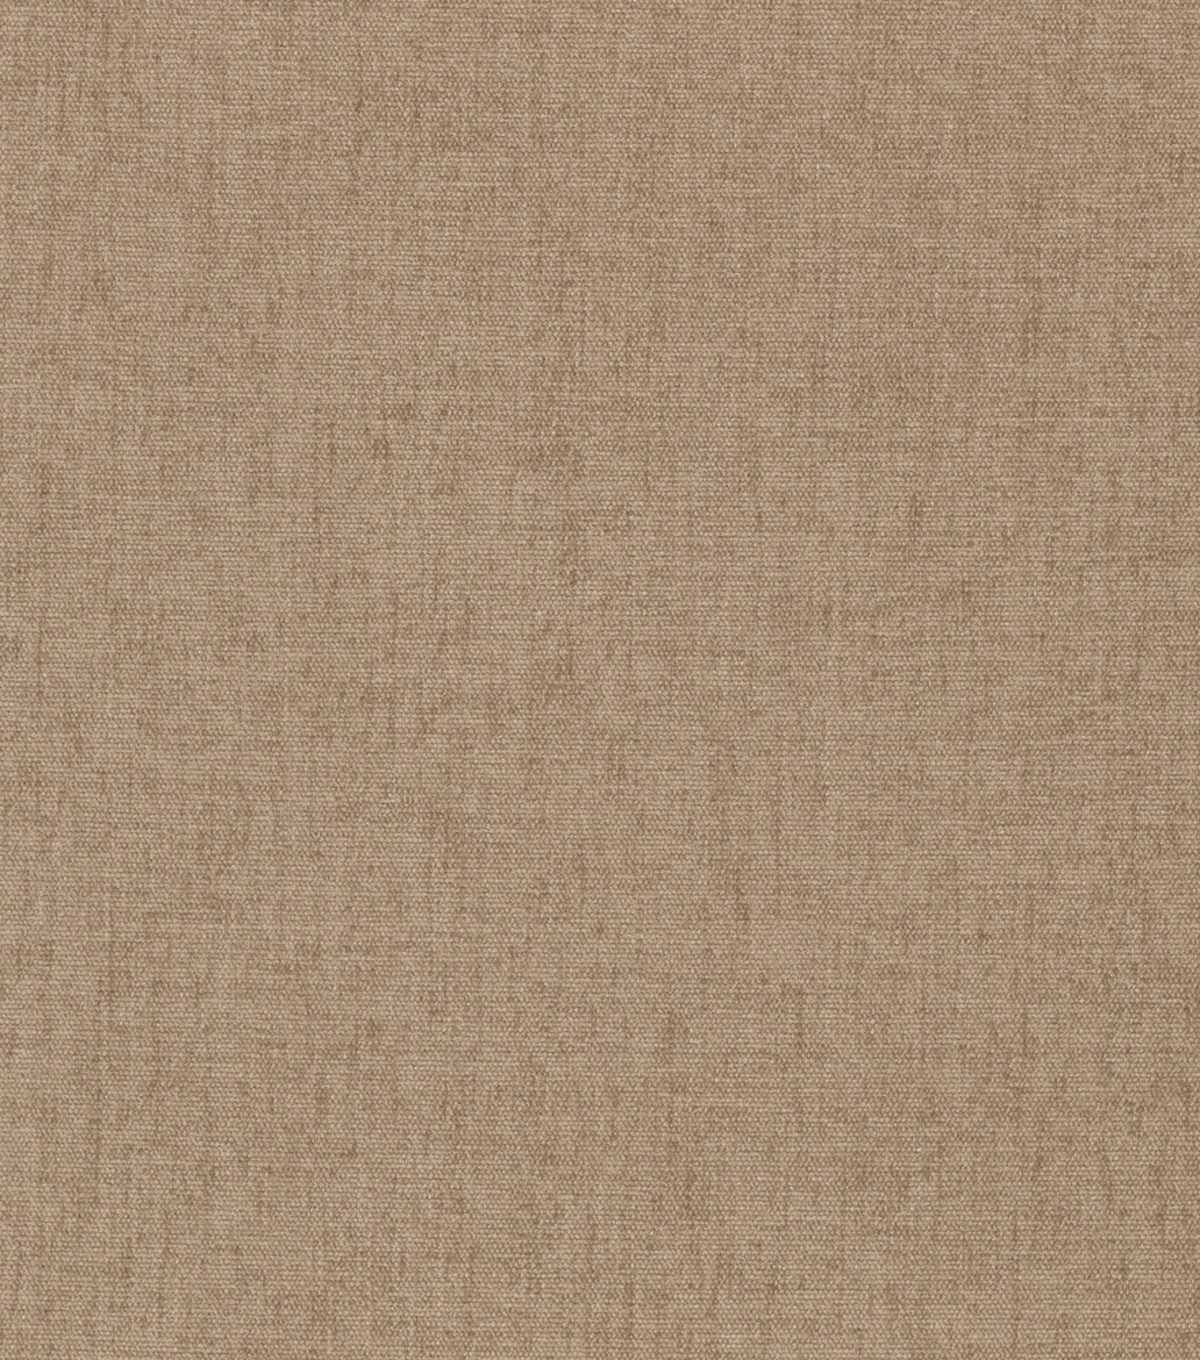 "Home Decor 8""x8"" Fabric Swatch-Charisma Linen"